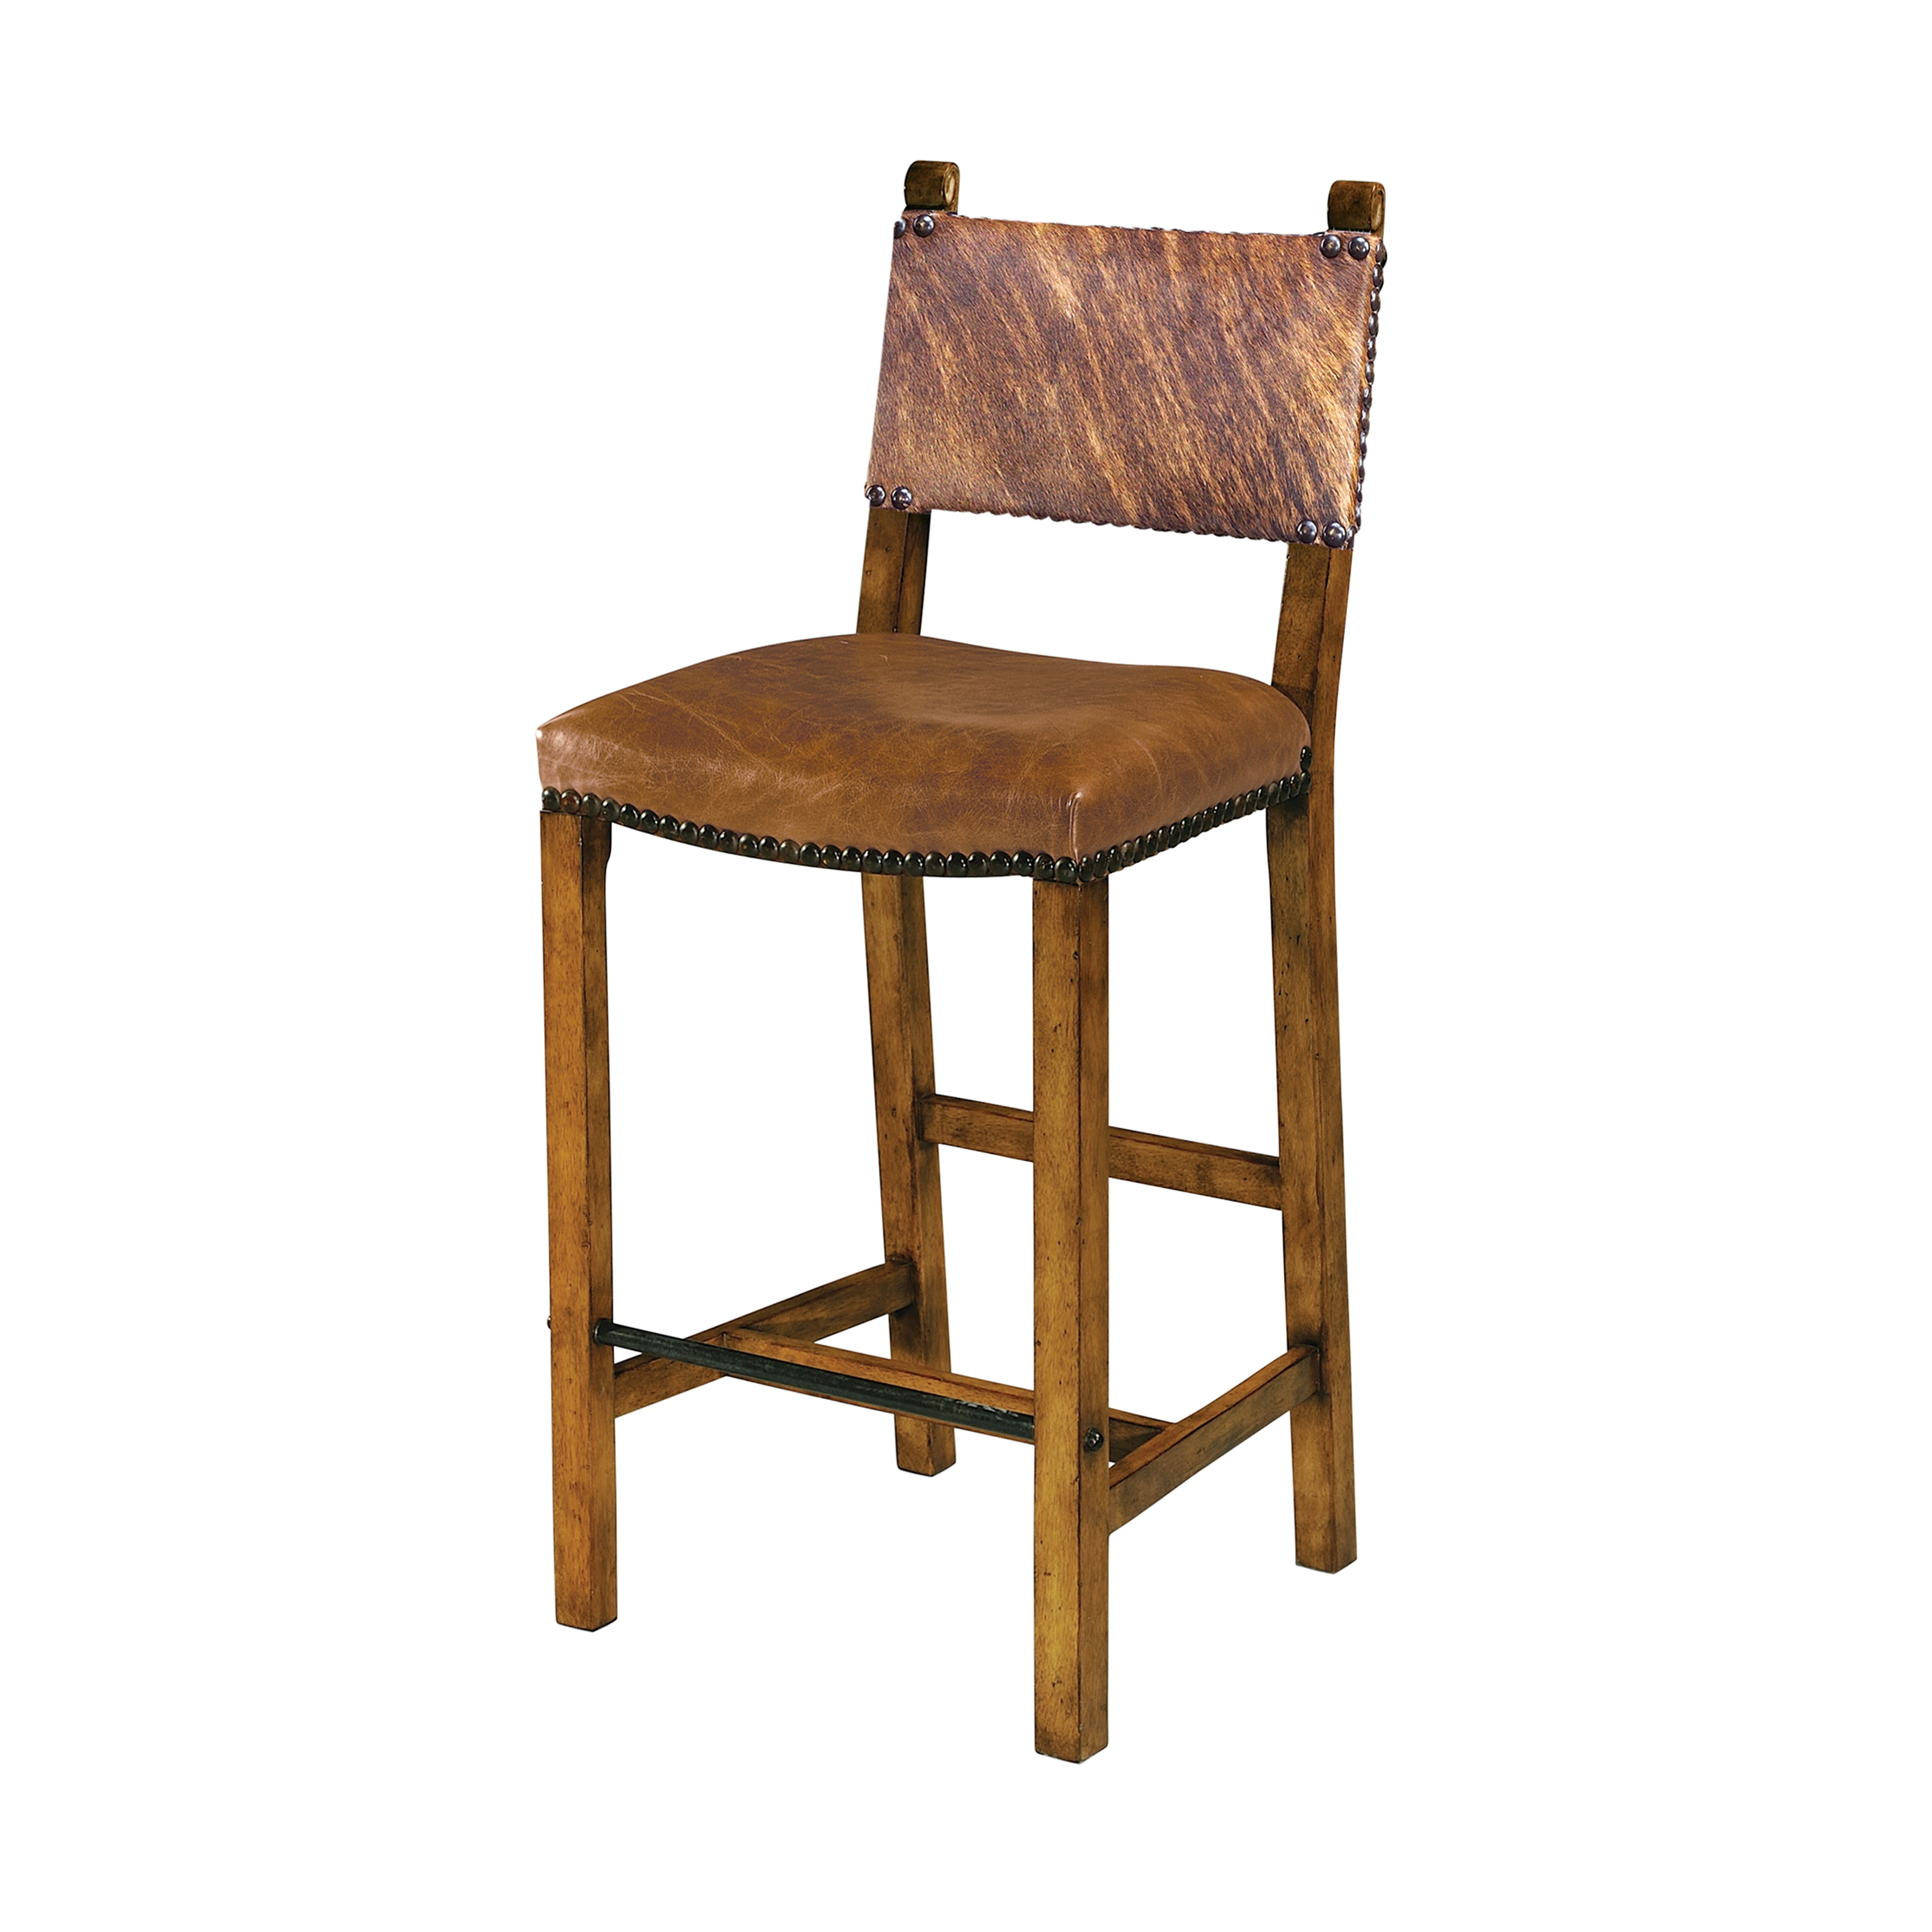 Theodore Alexander Furniture A Directorâu20ac™s Bar Chair 4200 125HM